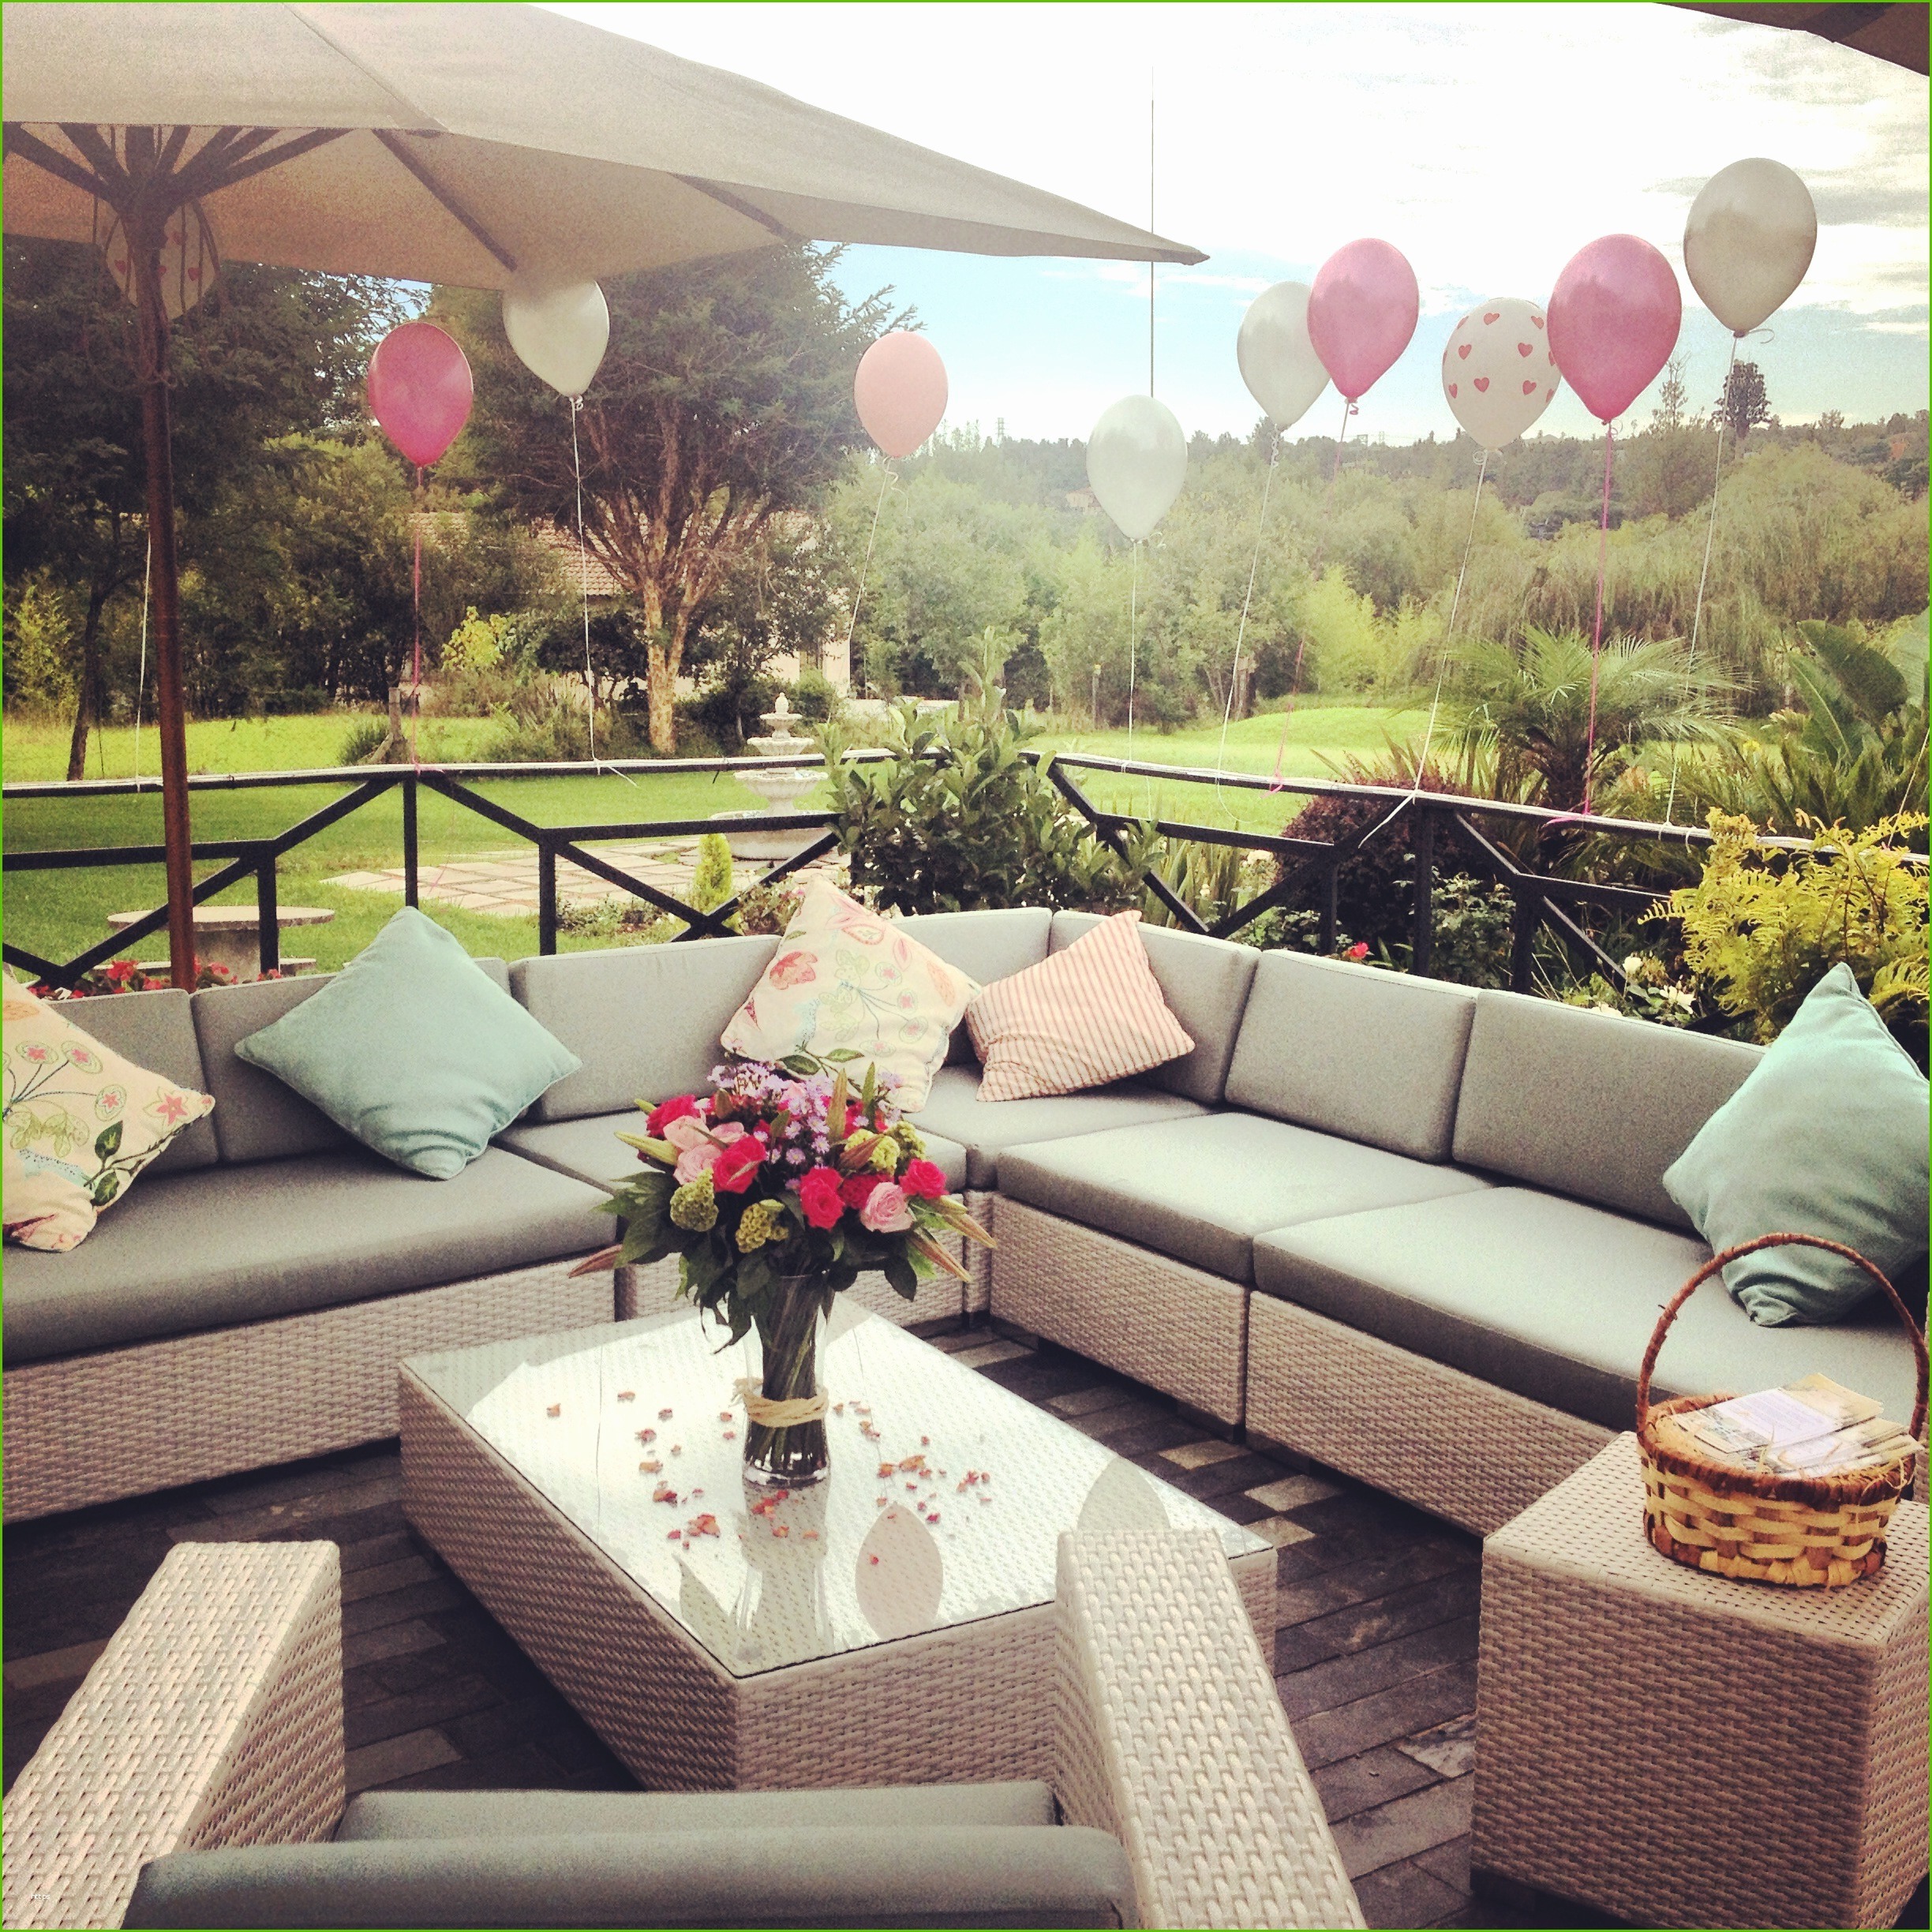 Inspirational Unique Baby Shower Venues Awesome Kwa Muzi Lodge Blog - Baby Shower with Luxury Baby Shower Venues